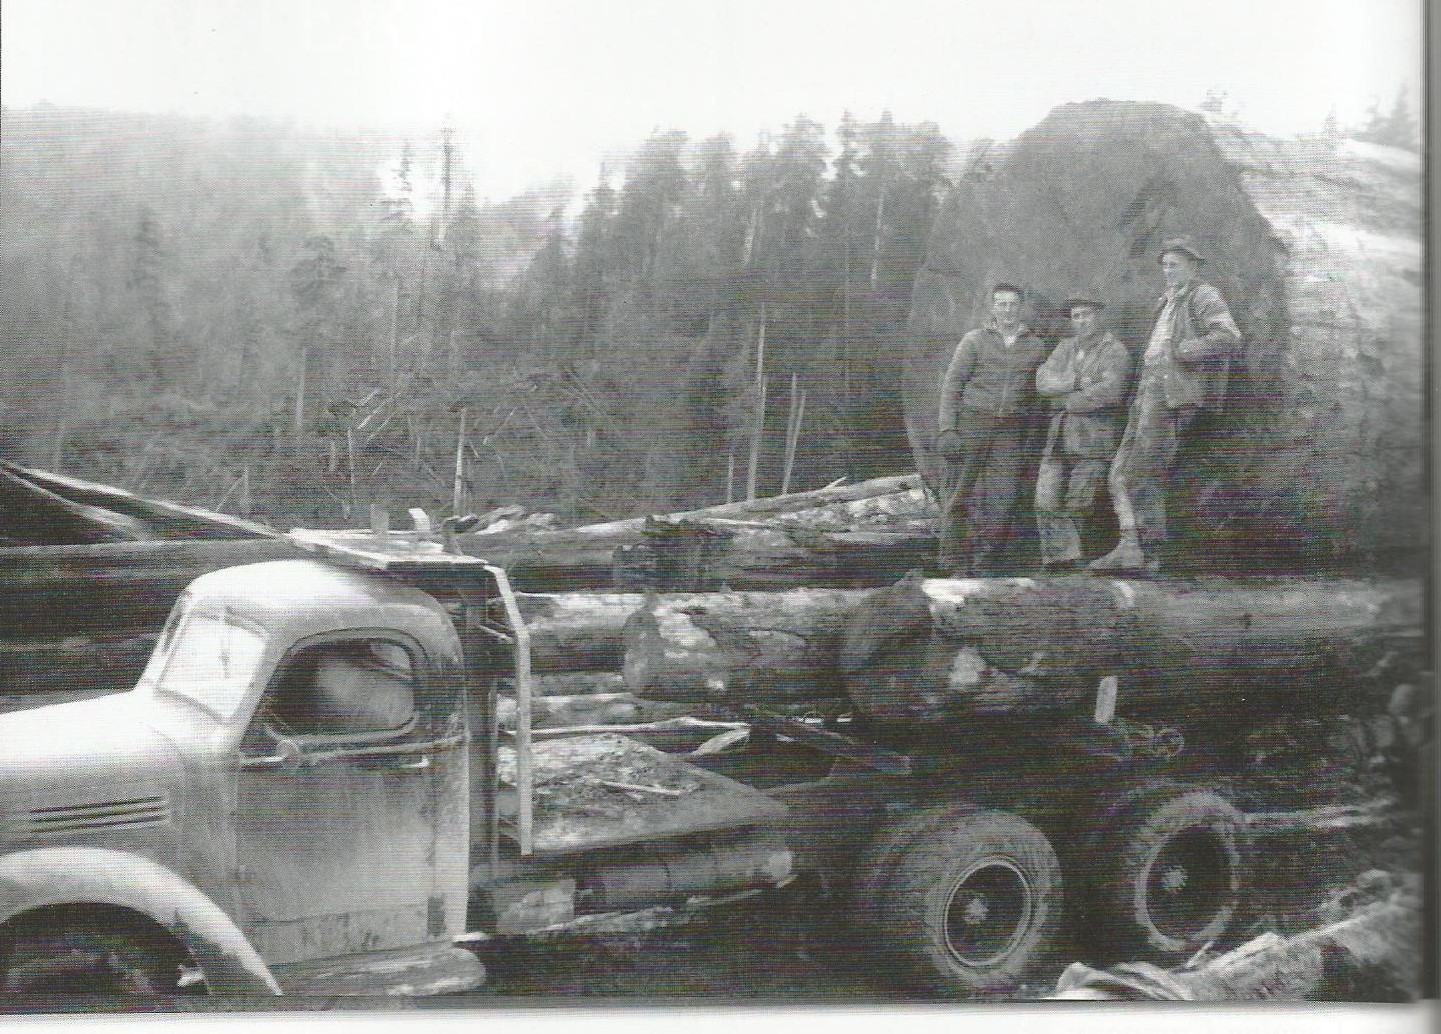 """Brix loggers in Ellsworth during the 1940's. Left to right: Johnny Bighill, Art Paavola, and Arvin Simukka. Photo from """"When Logging Was Logging: 100 Years of Big Timber in Southwest Washington"""" 2011. Appelo Archives Center."""